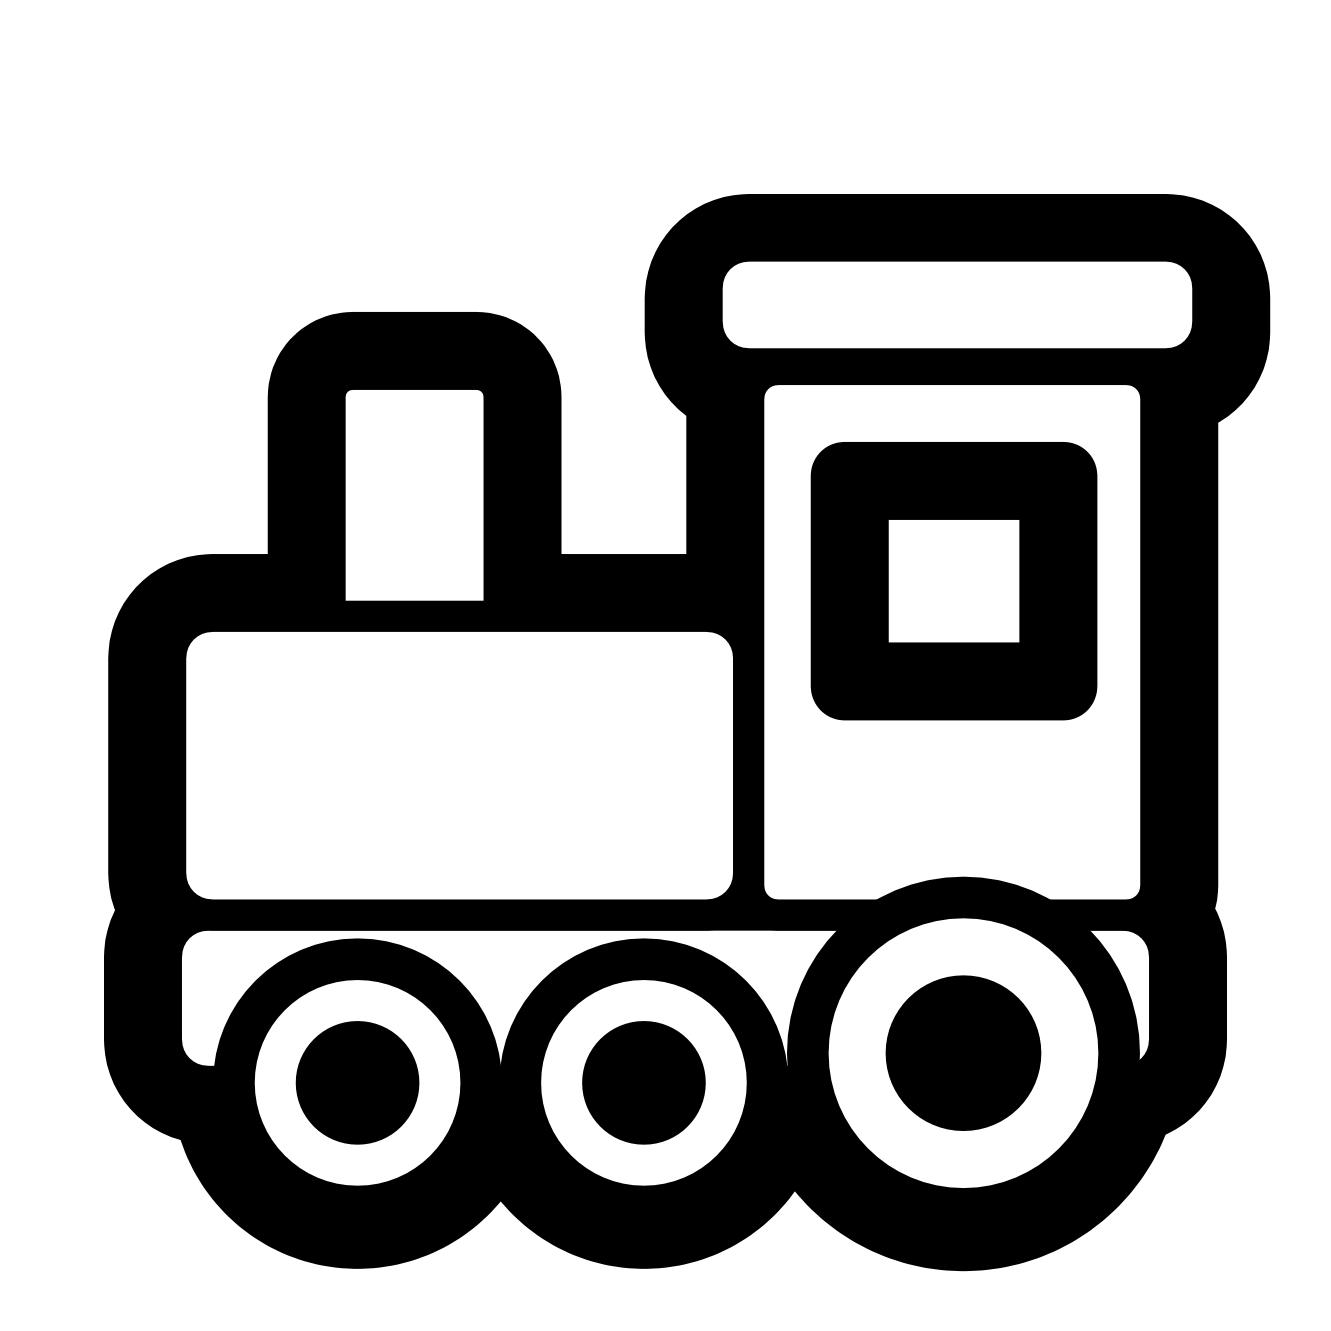 small resolution of images for train on tracks clipart